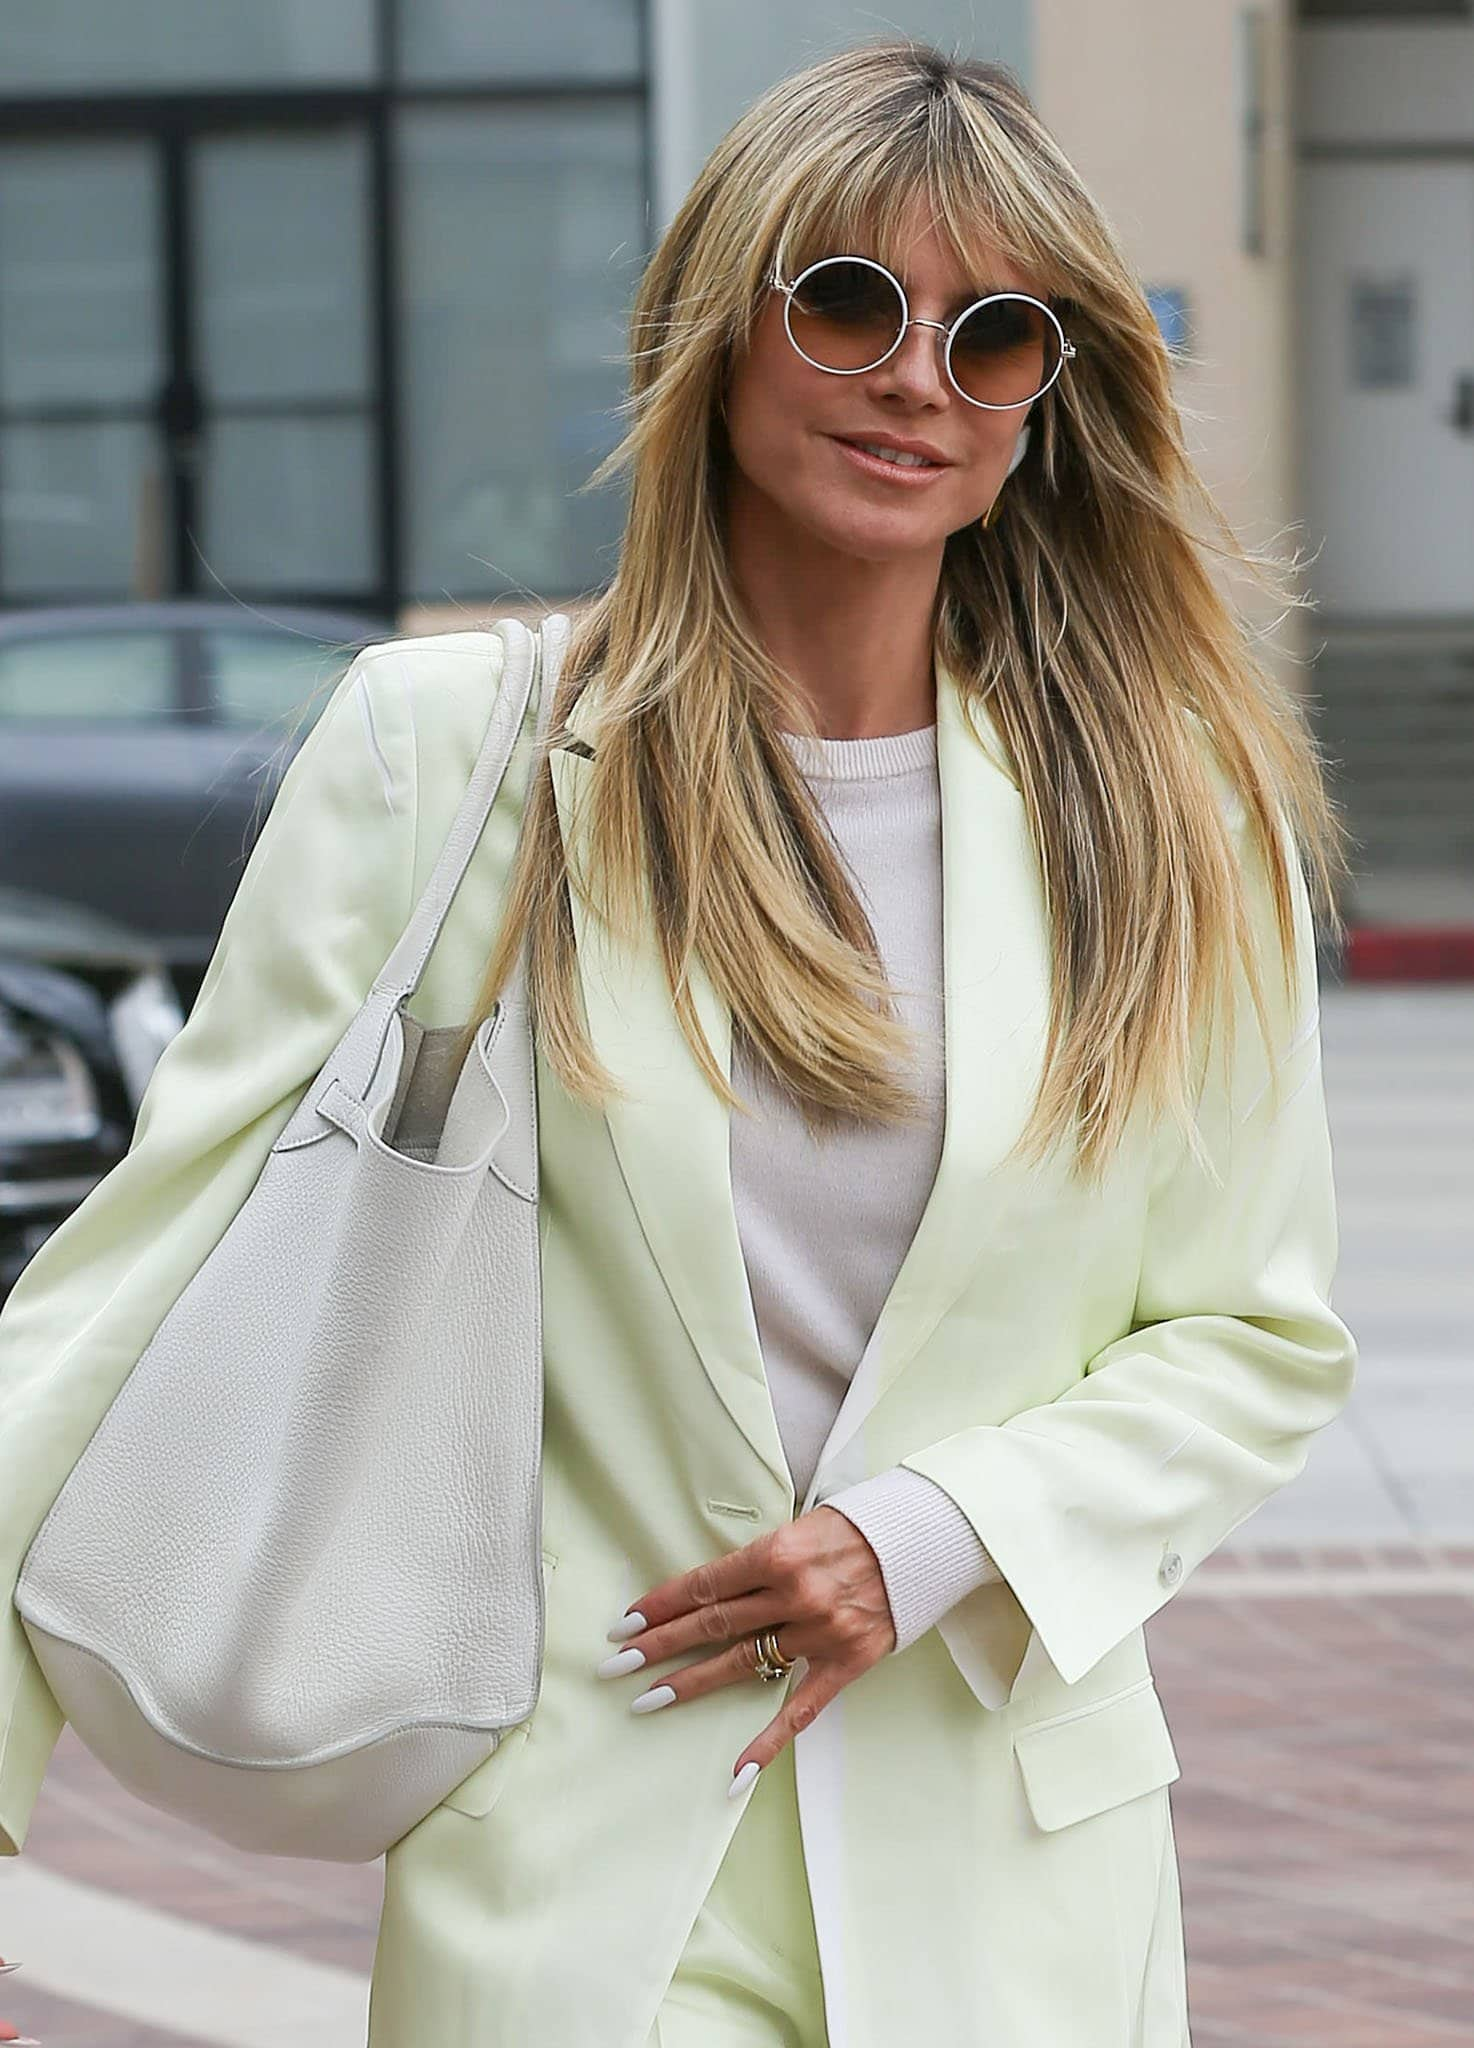 Heidi Klum styles her look with round white-framed sunnies and a large Celine tote